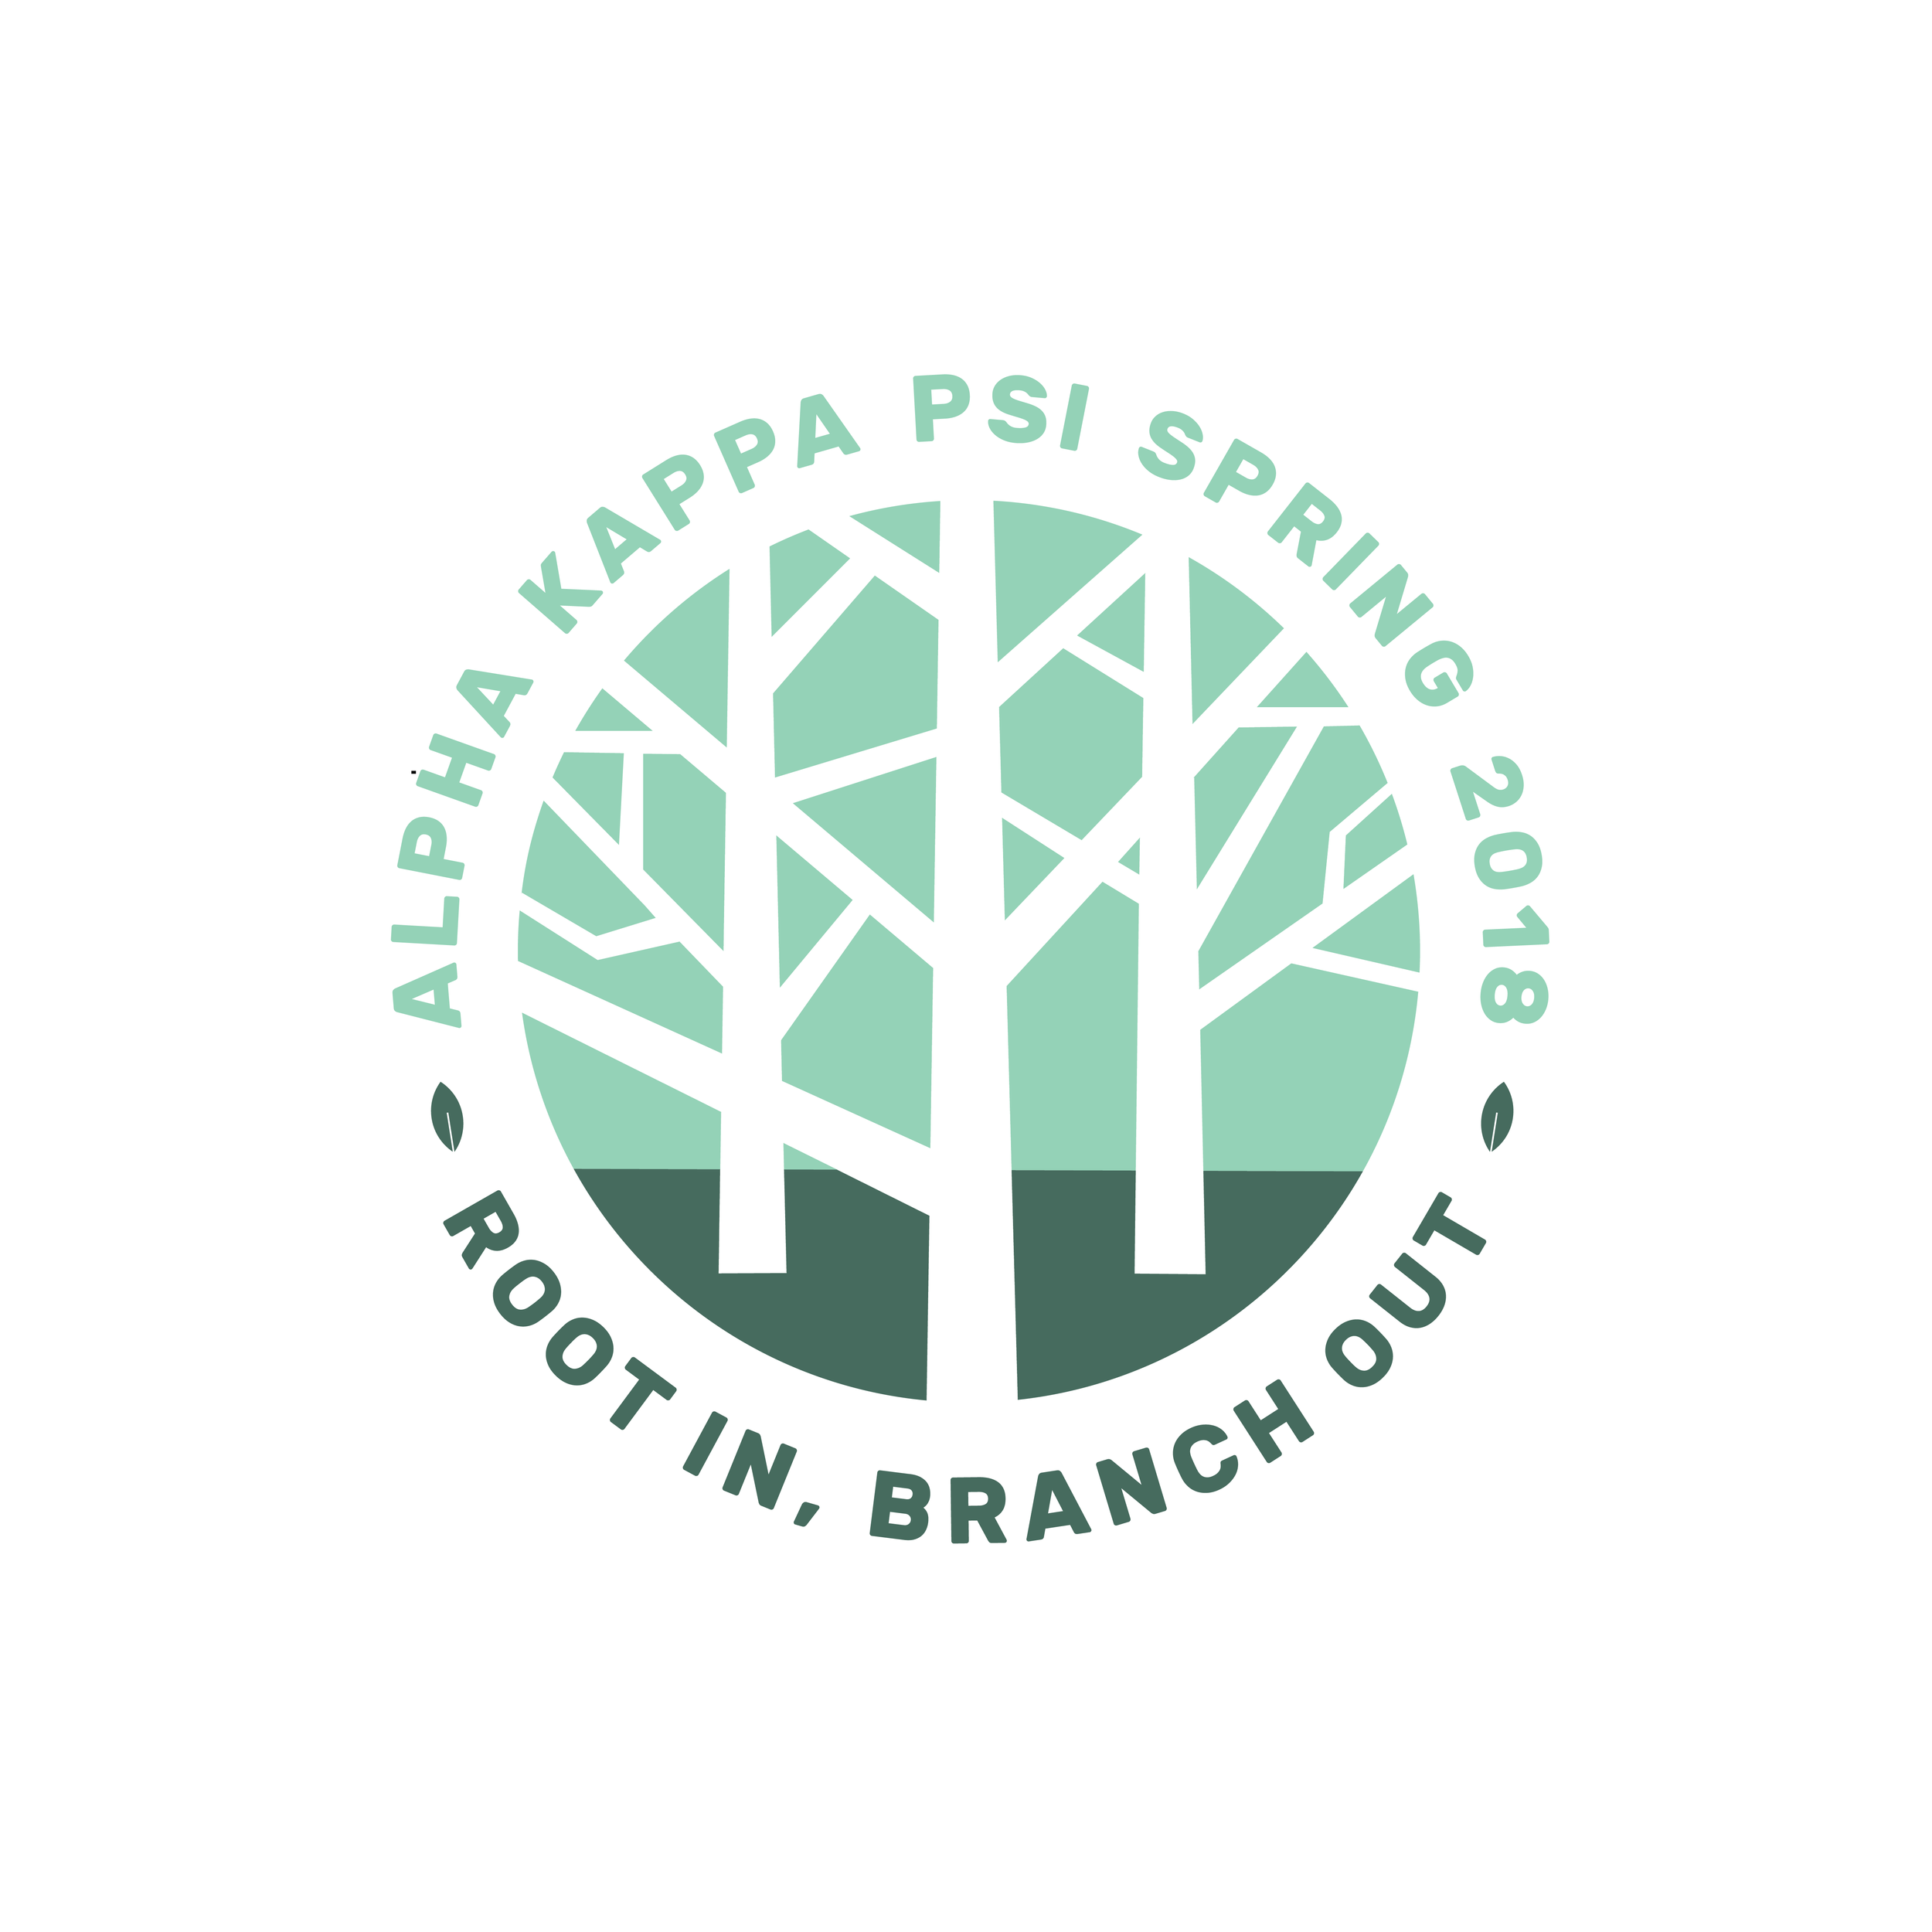 Logo:  if you look closely, you can see A, K, and Psi (Ψ) in the branches